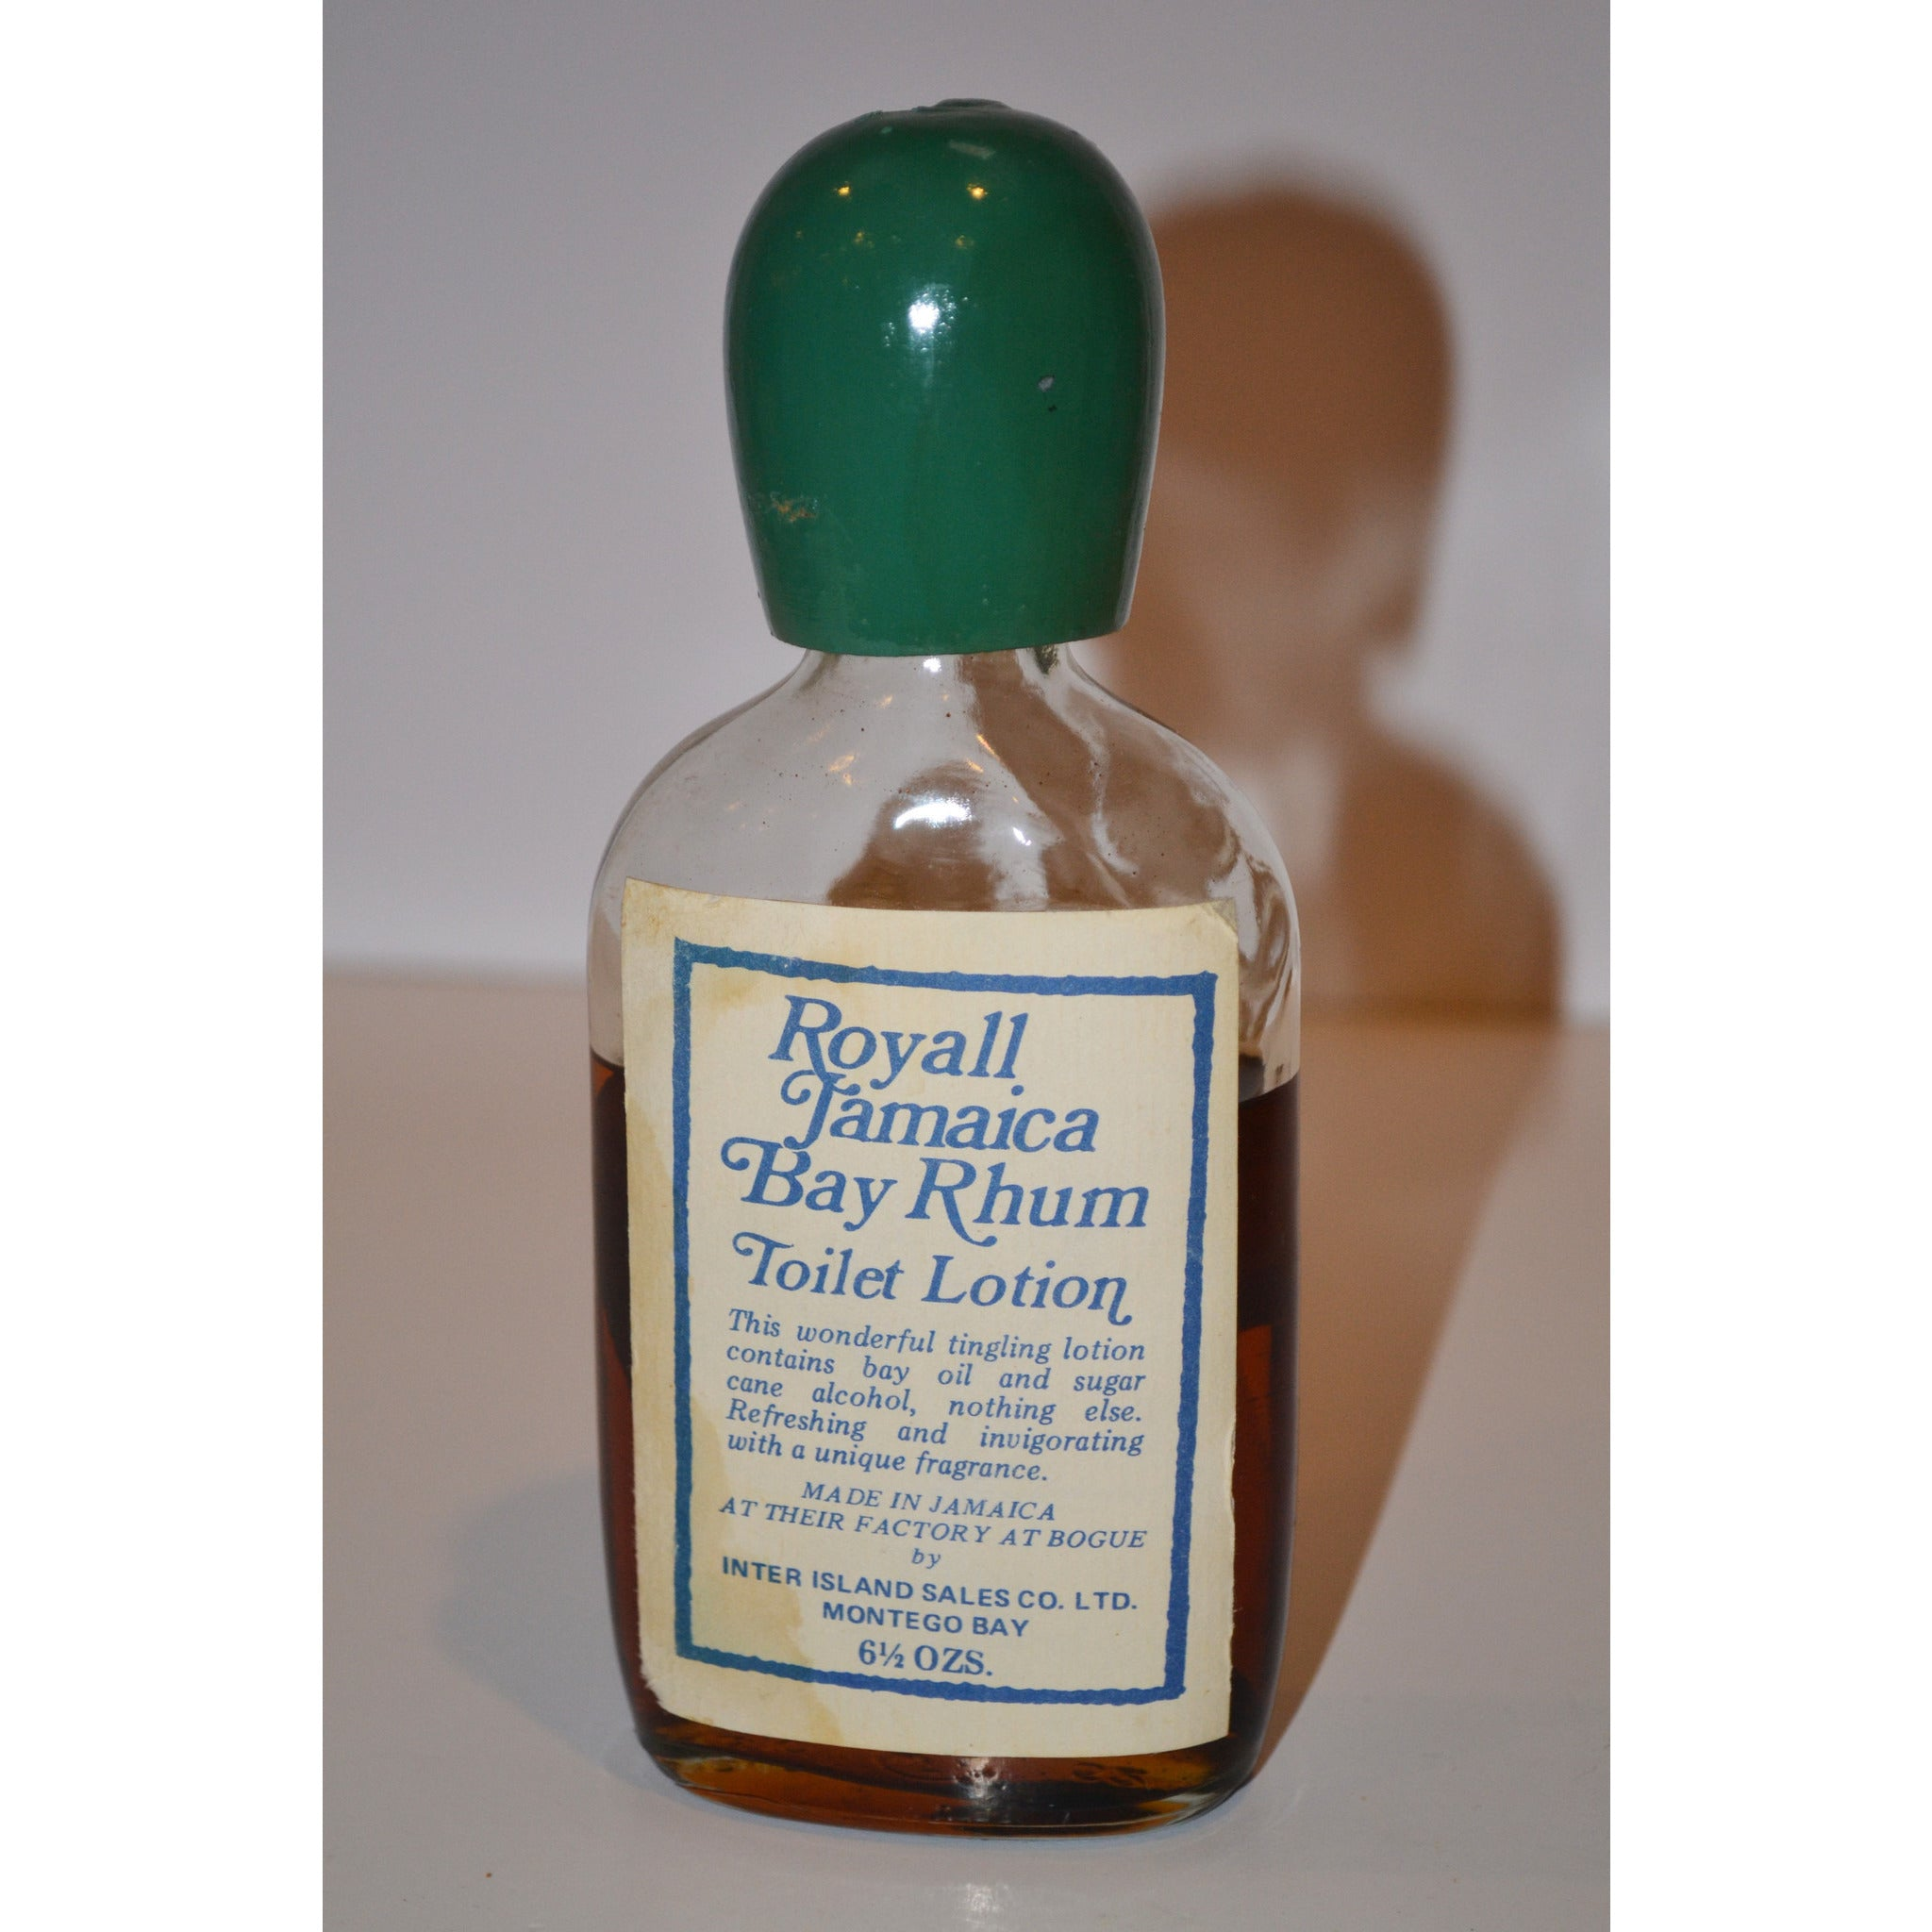 Vintage Bay Rhum Toilet Lotion By Royall Jamaica